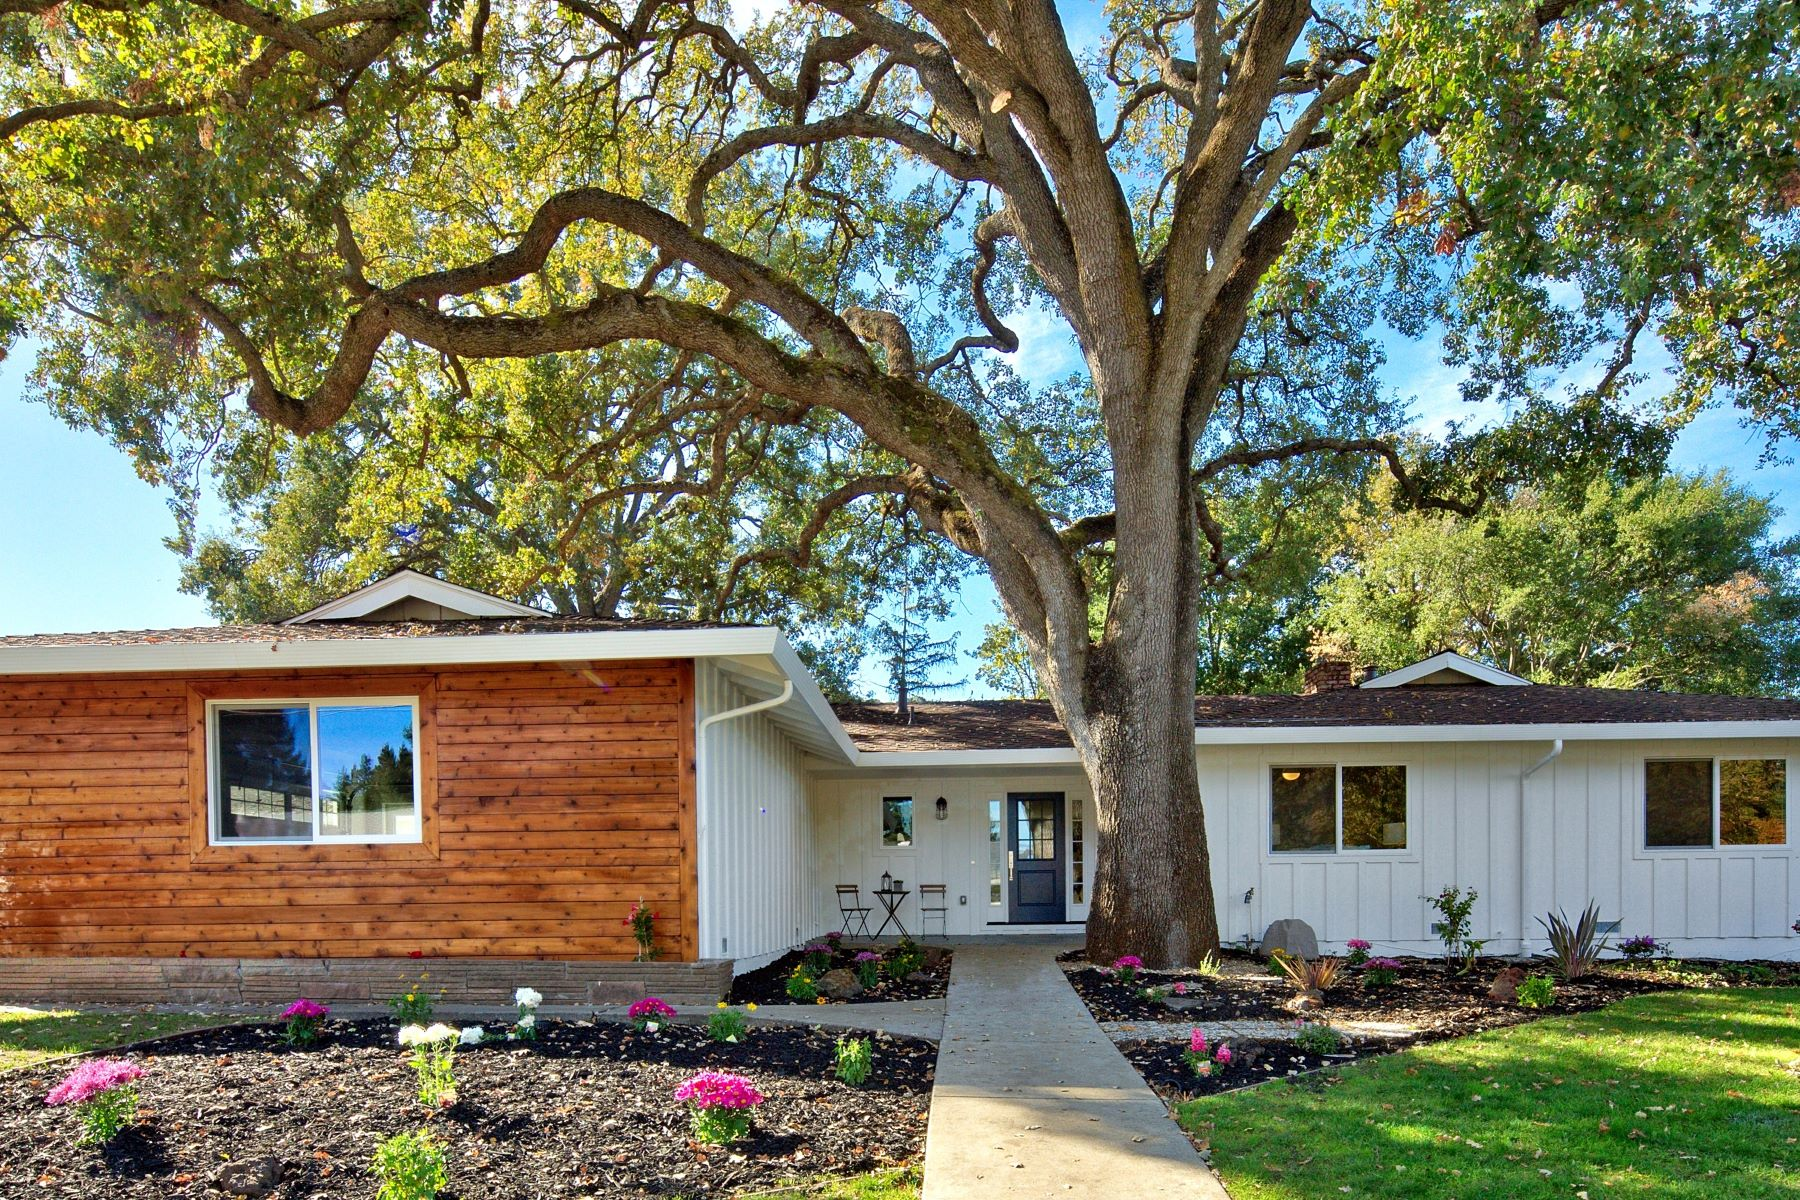 Single Family Home for Sale at Modern Contemporary Farmhouse 1023 Westridge Avenue Danville, California 94526 United States